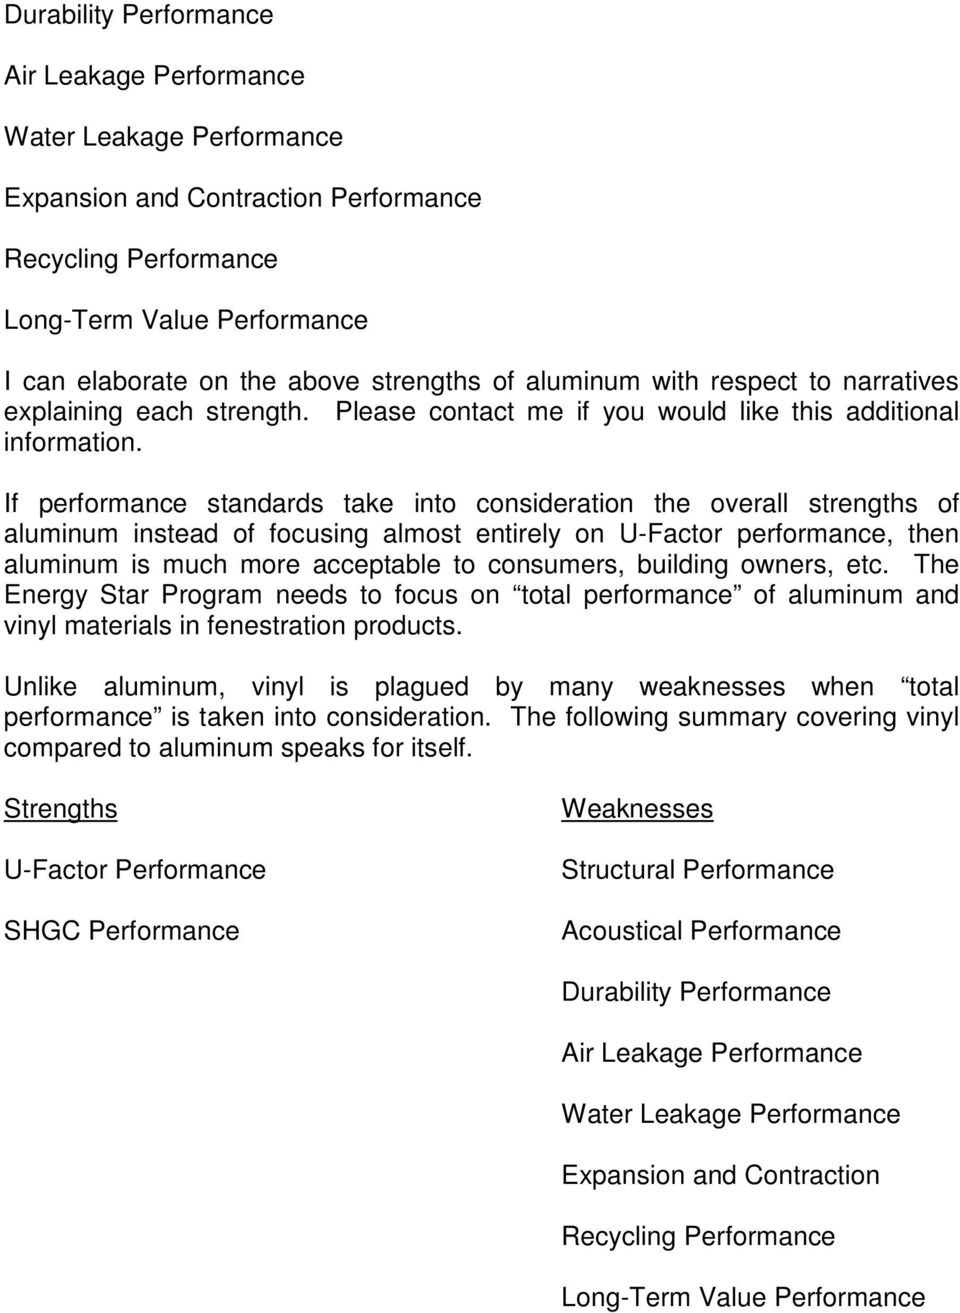 If performance standards take into consideration the overall strengths of aluminum instead of focusing almost entirely on U-Factor performance, then aluminum is much more acceptable to consumers,